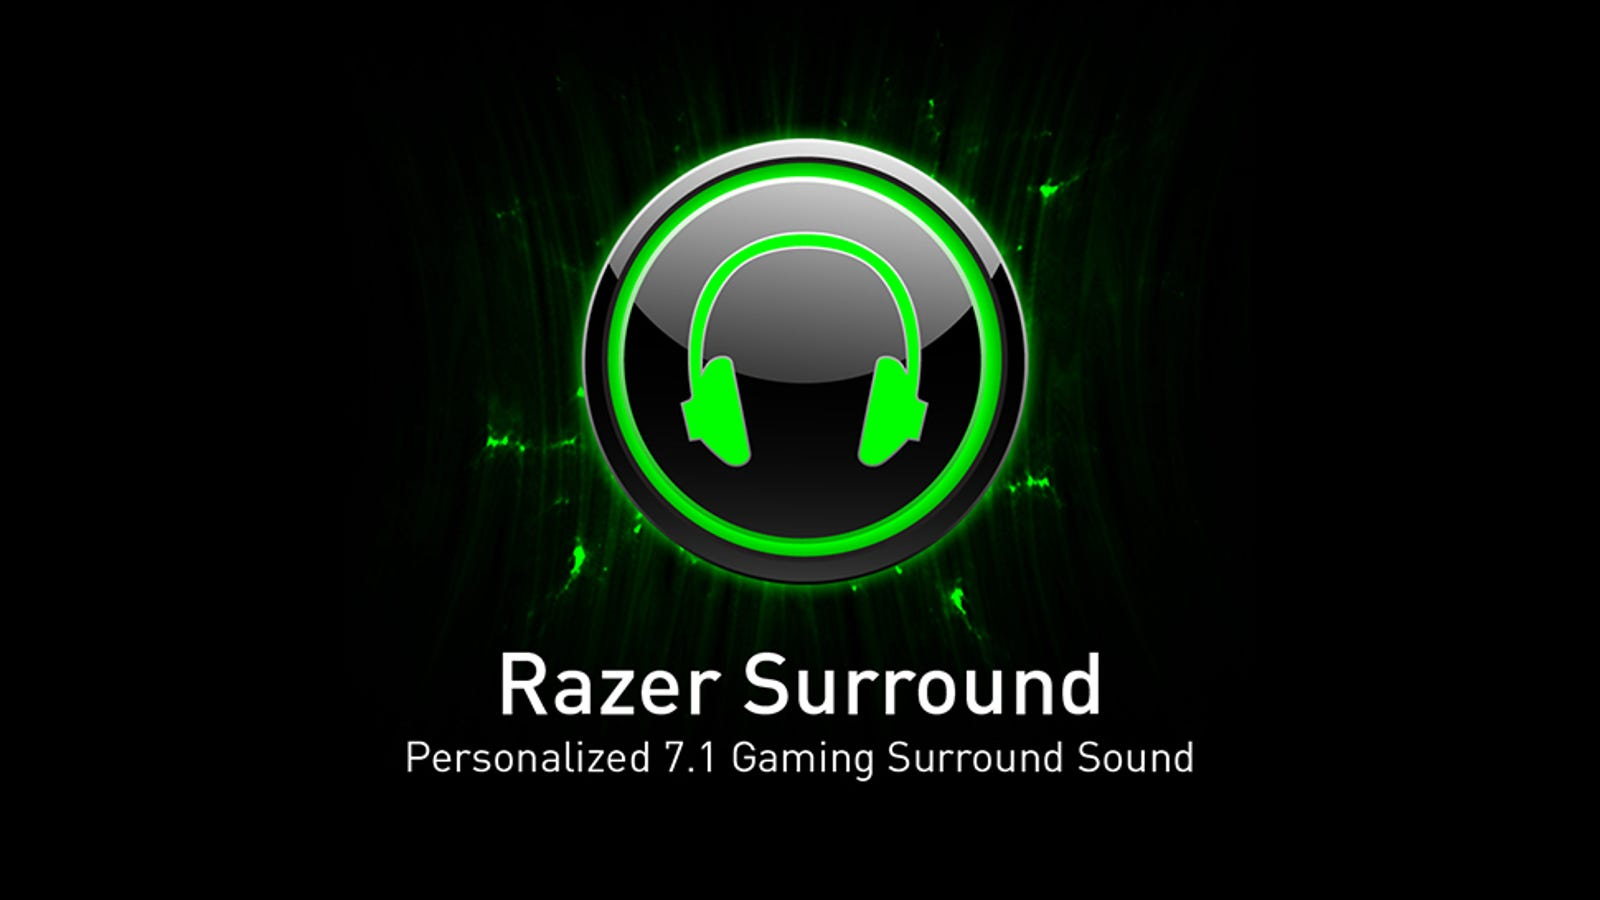 taotronics wired earbuds - Razer's Surround Software Could Turn Regular Headphones Into 7.1 Cans